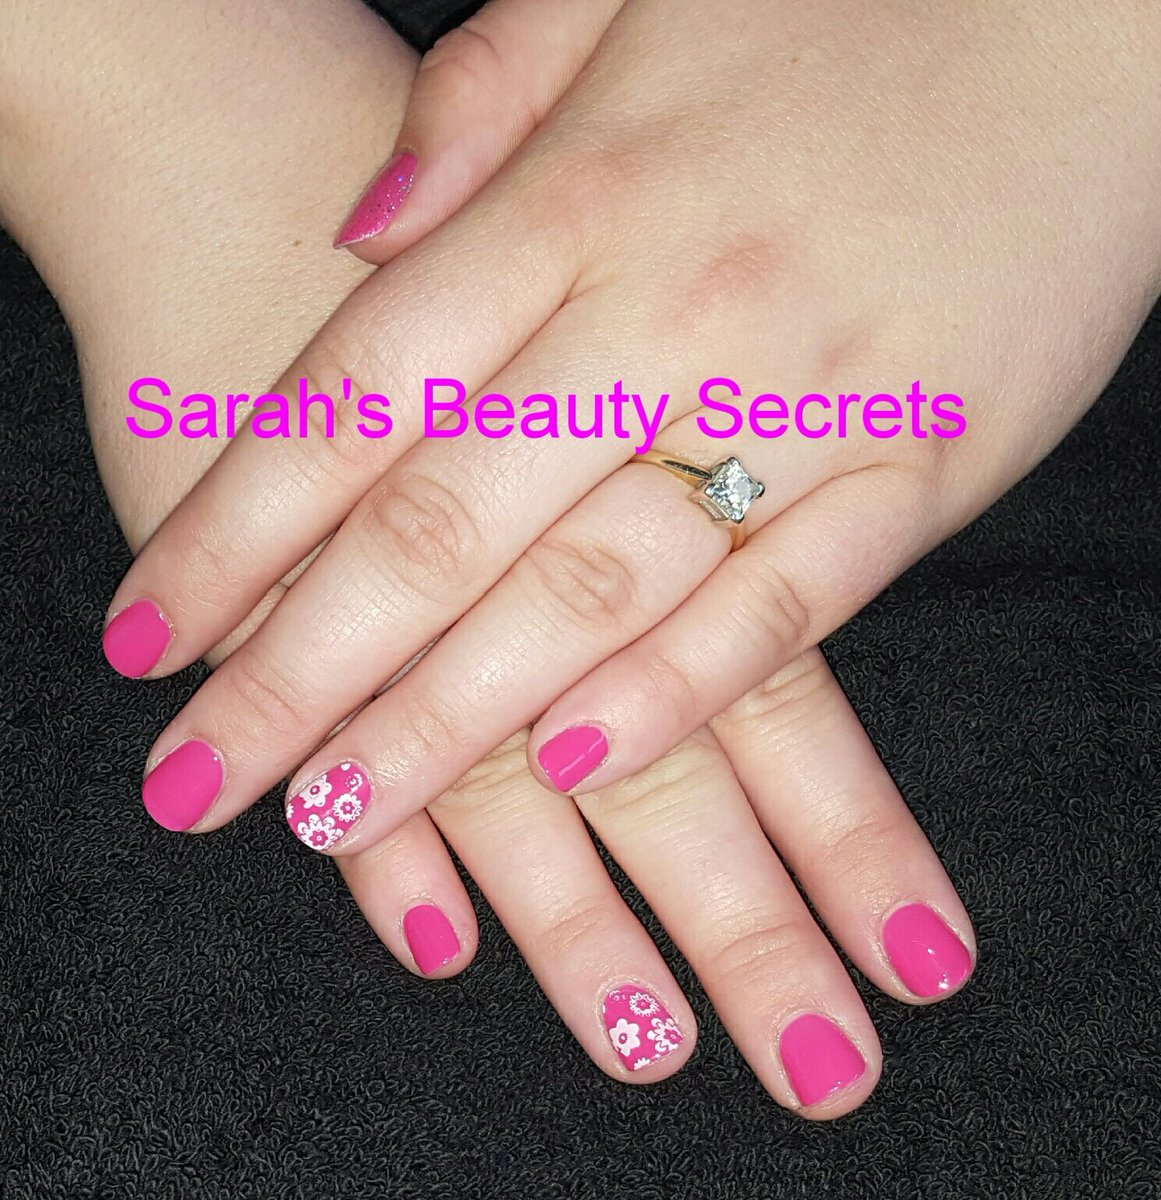 #CND Shellac Pink Bikini with #Moyou Stamping<br>http://pic.twitter.com/1EjwcckBGW